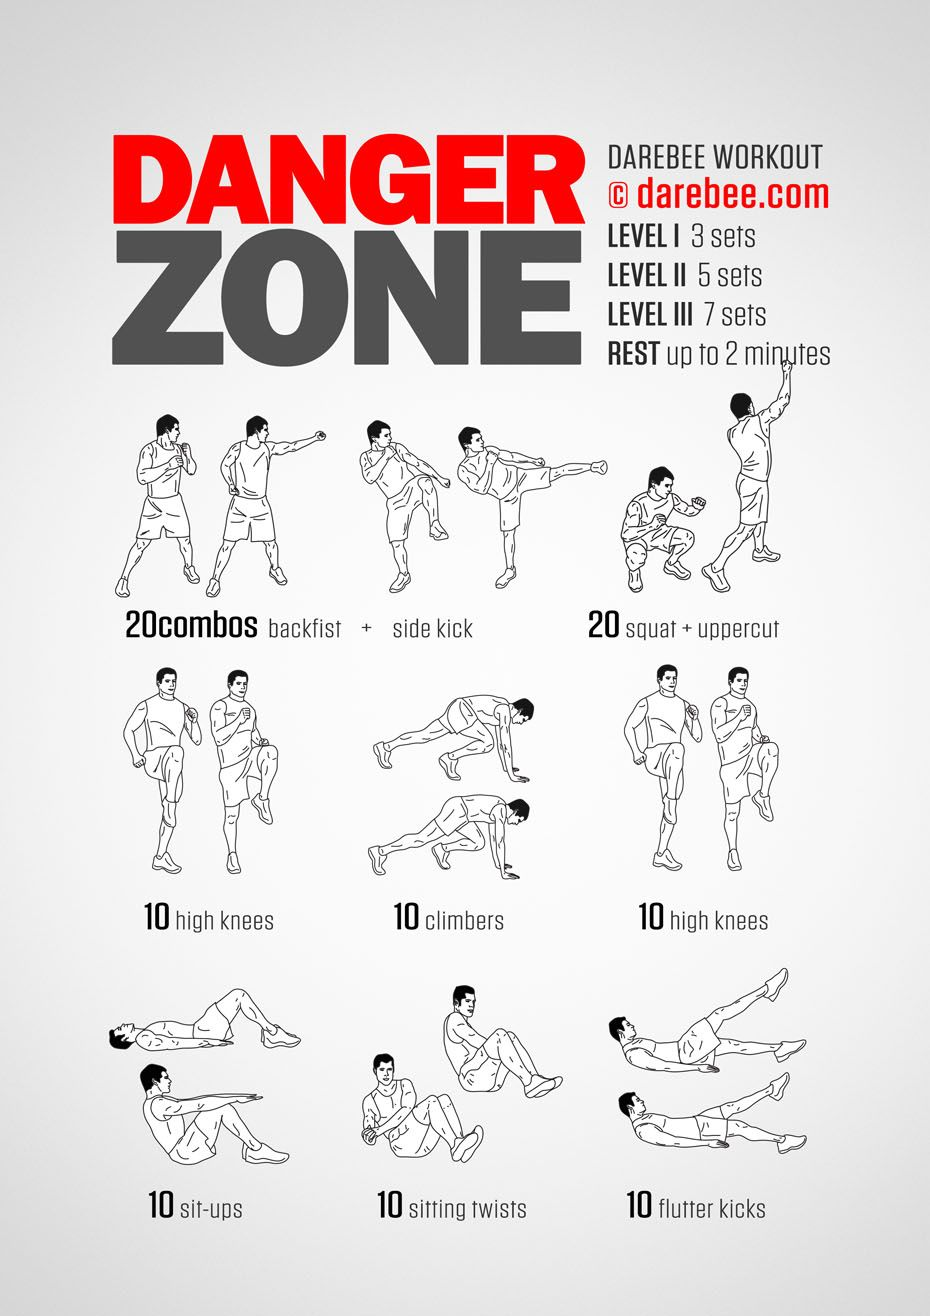 Danger Zone Workout Gym Workout Tips Workout Chart Fitness Tips For Men